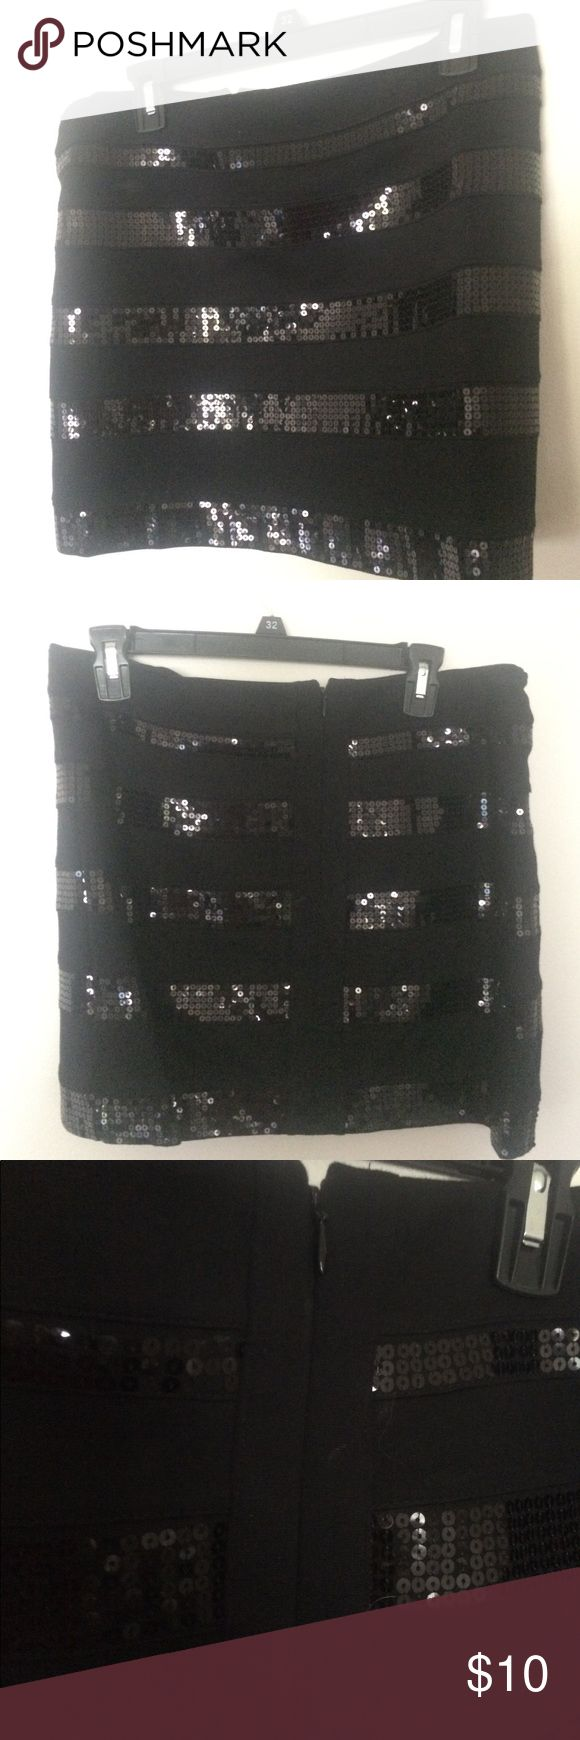 Express Sequin Mini Skirt Black mini skirt from Express with sequin detailing. Back zip closure. Size 12, stretchy fit. Express Skirts Mini